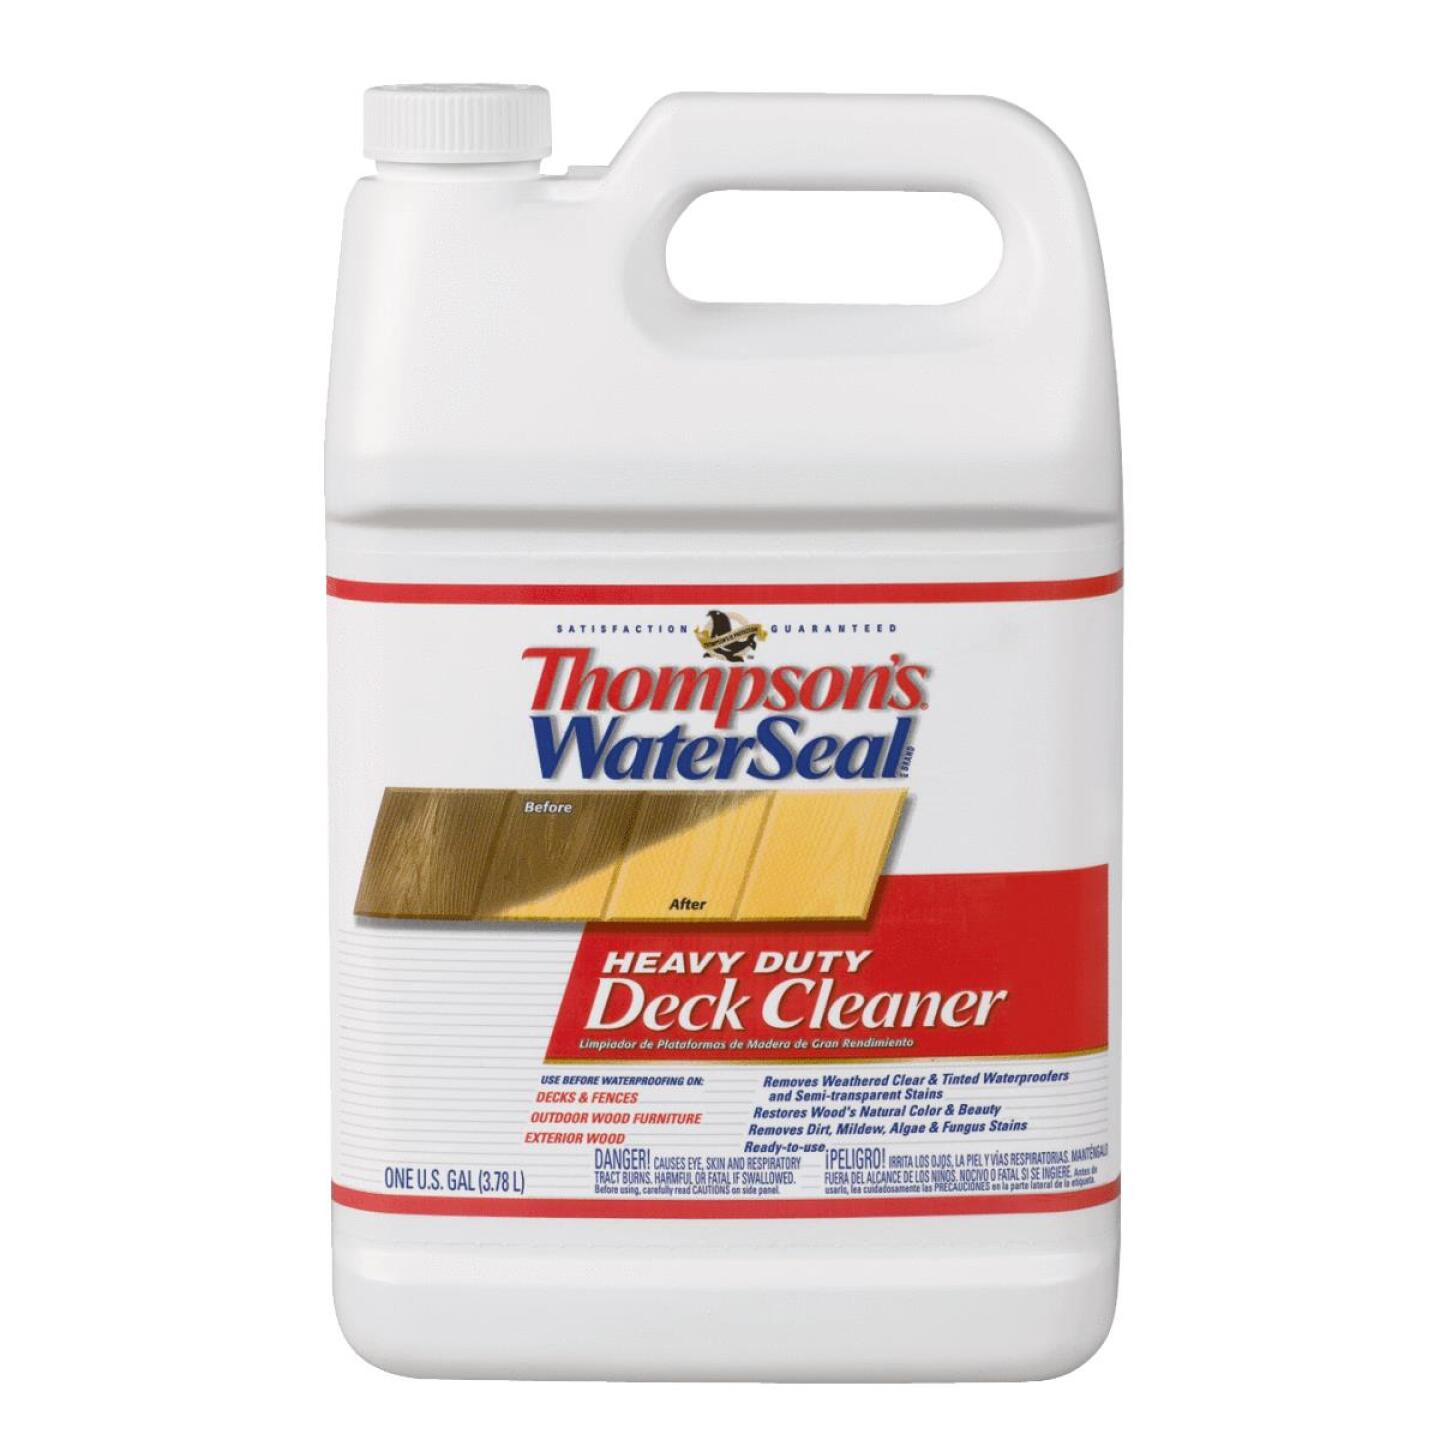 Thompson's WaterSeal 1 Gal. Heavy-Duty Deck Cleaner Image 1